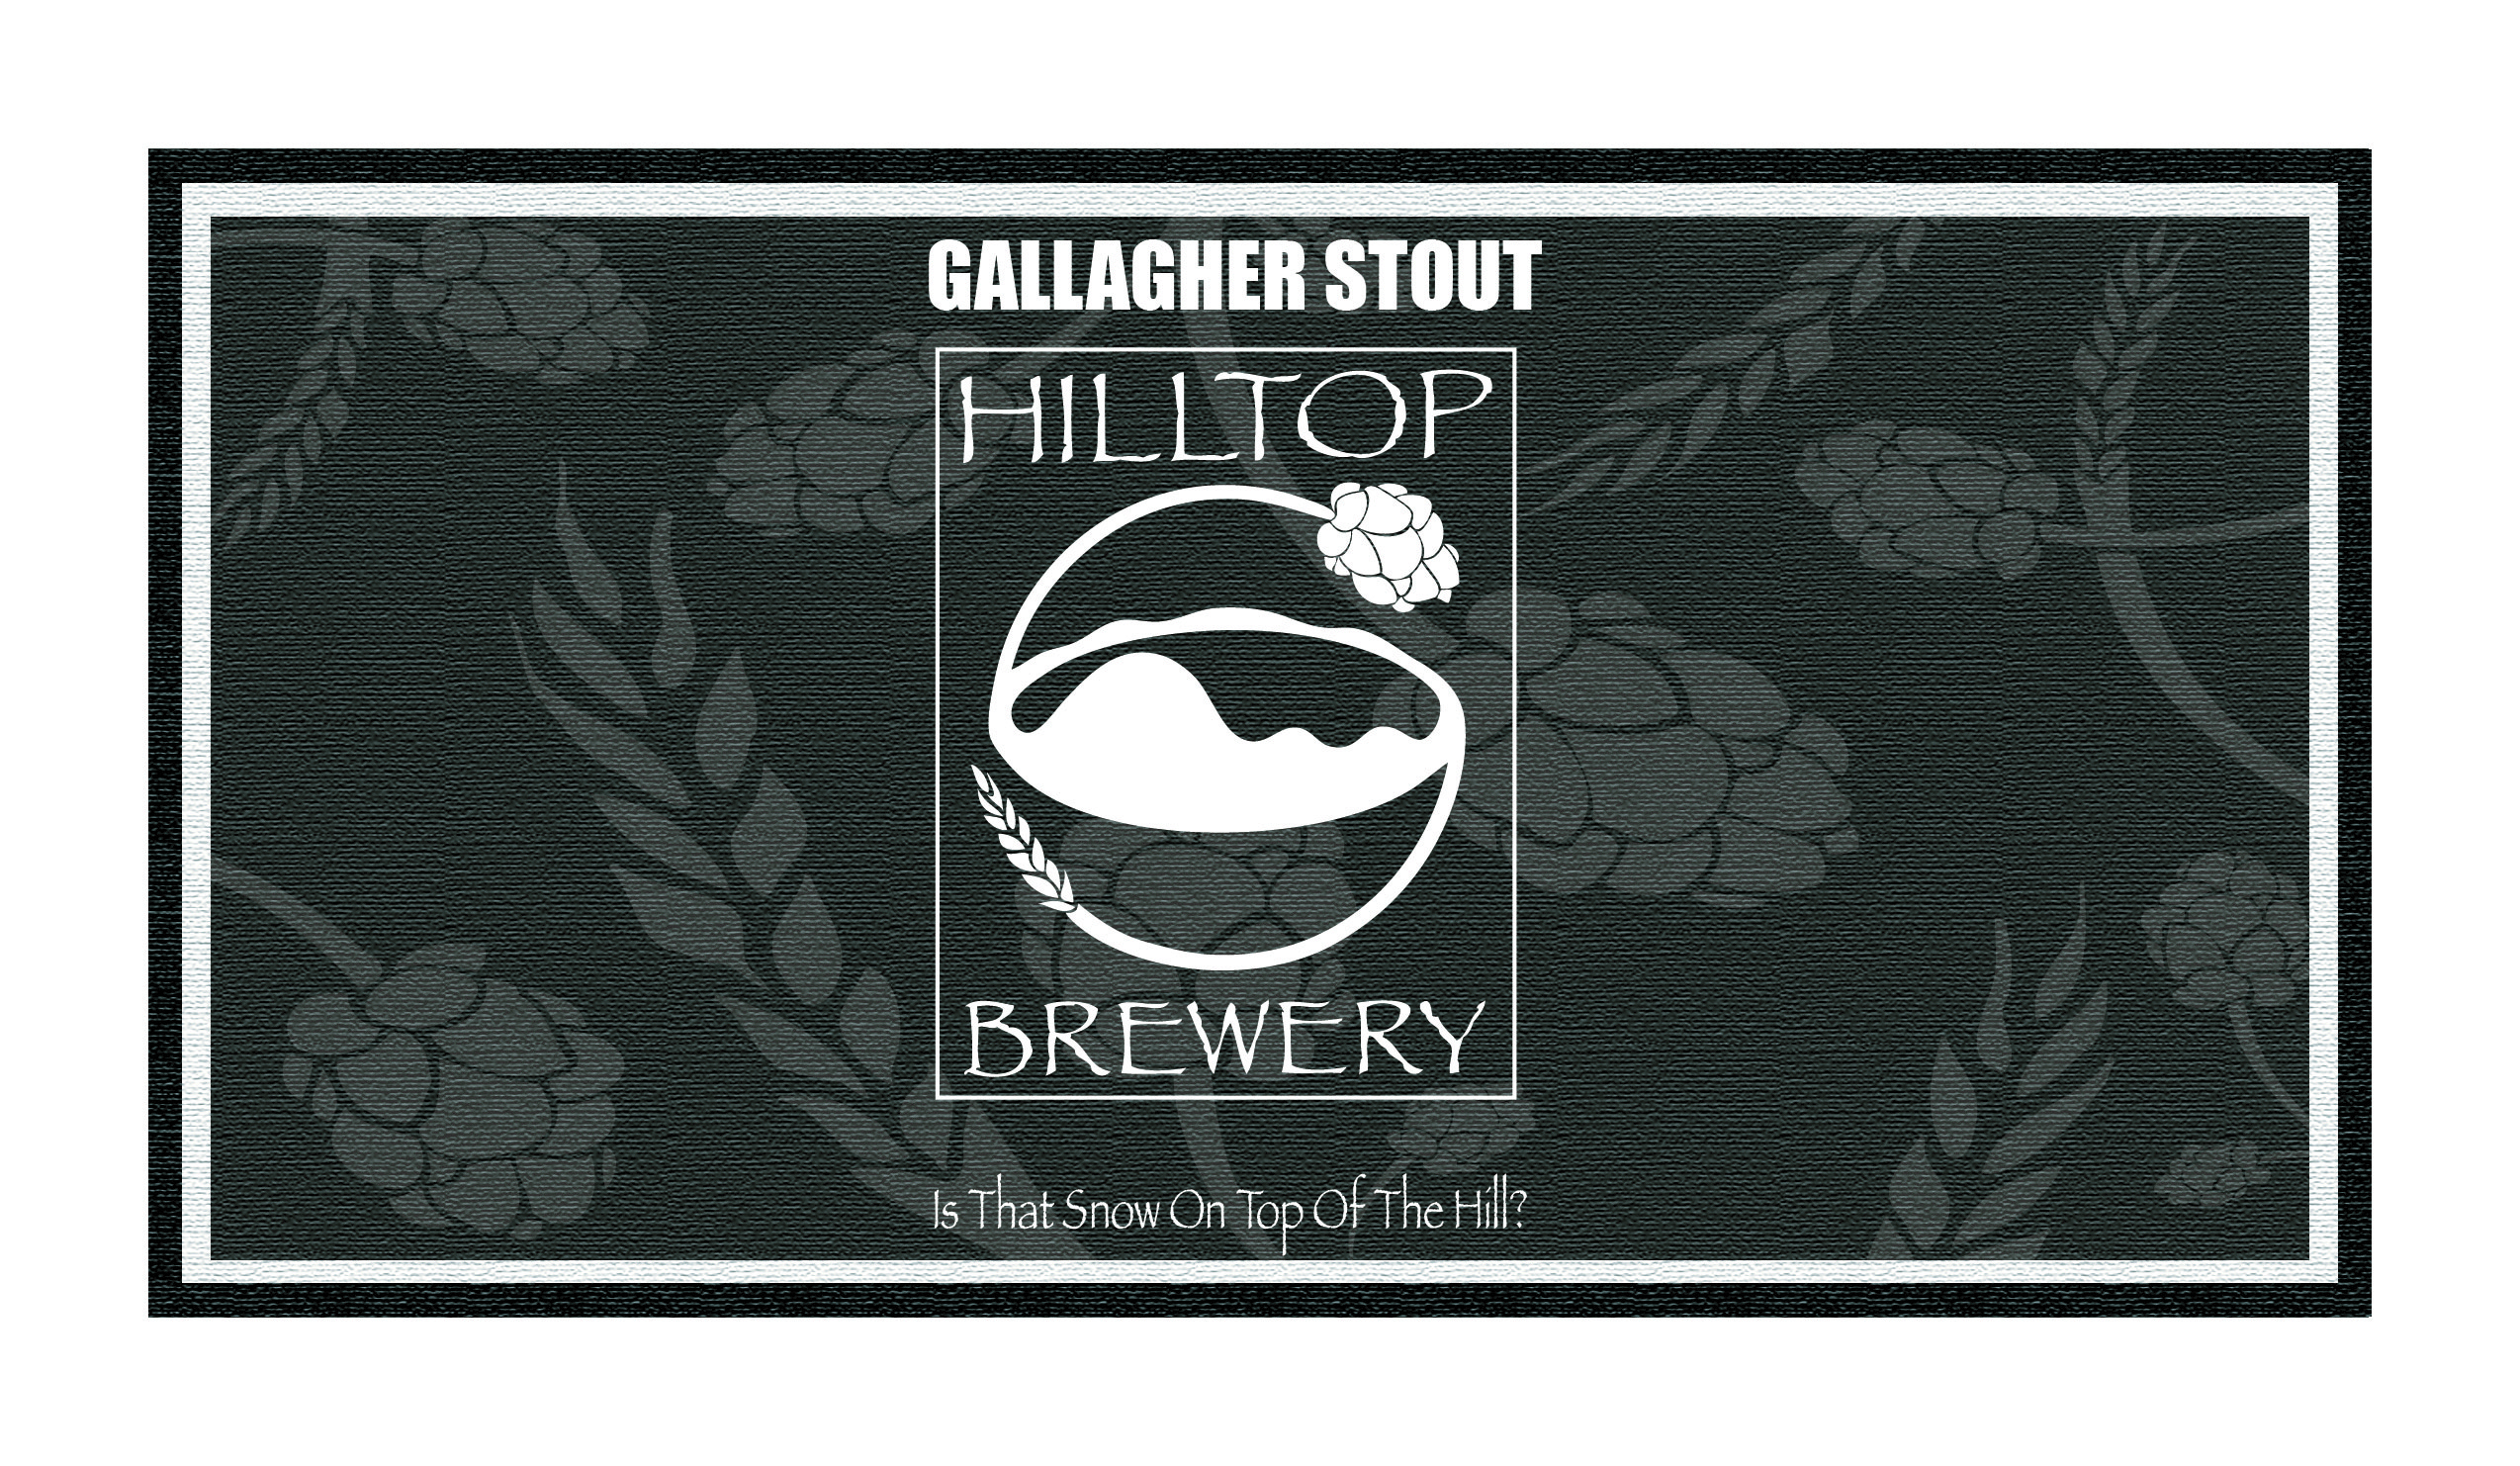 Gallagher Stout